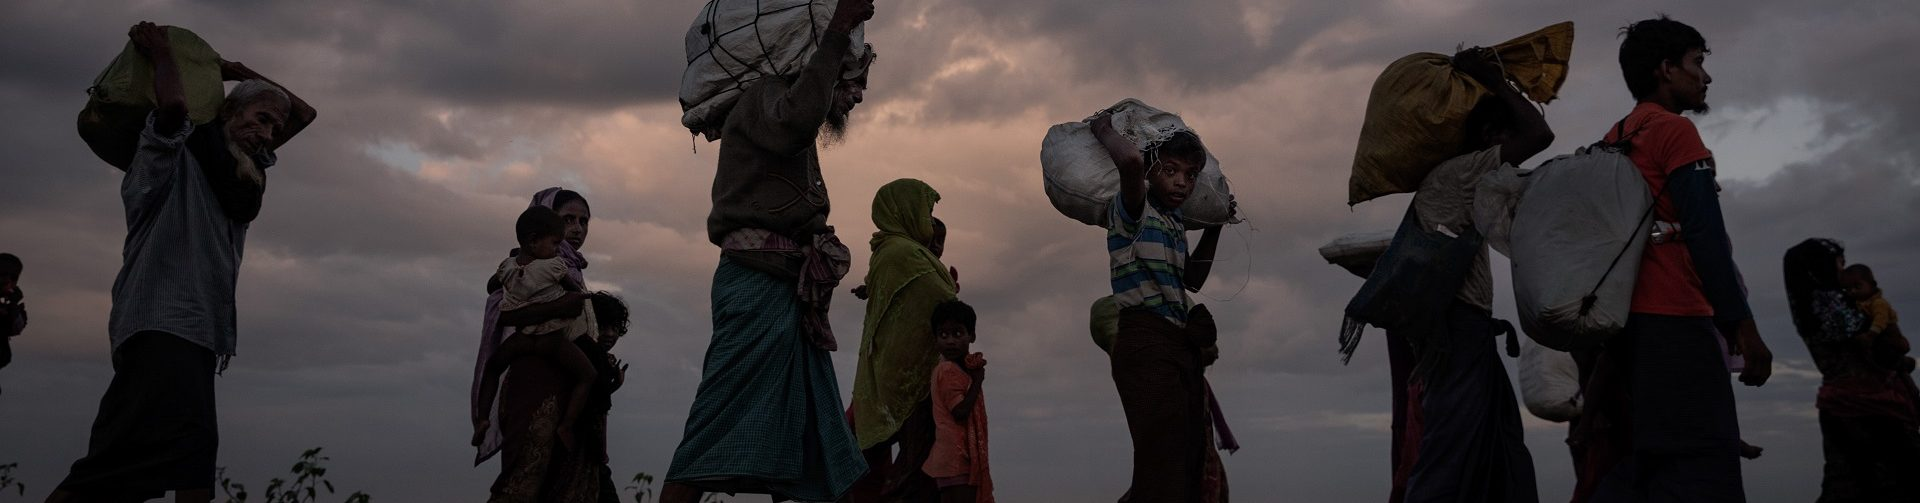 The forced exile of Rohingyas into Bangladesh: Economic and nutritional outcomes and future policy options